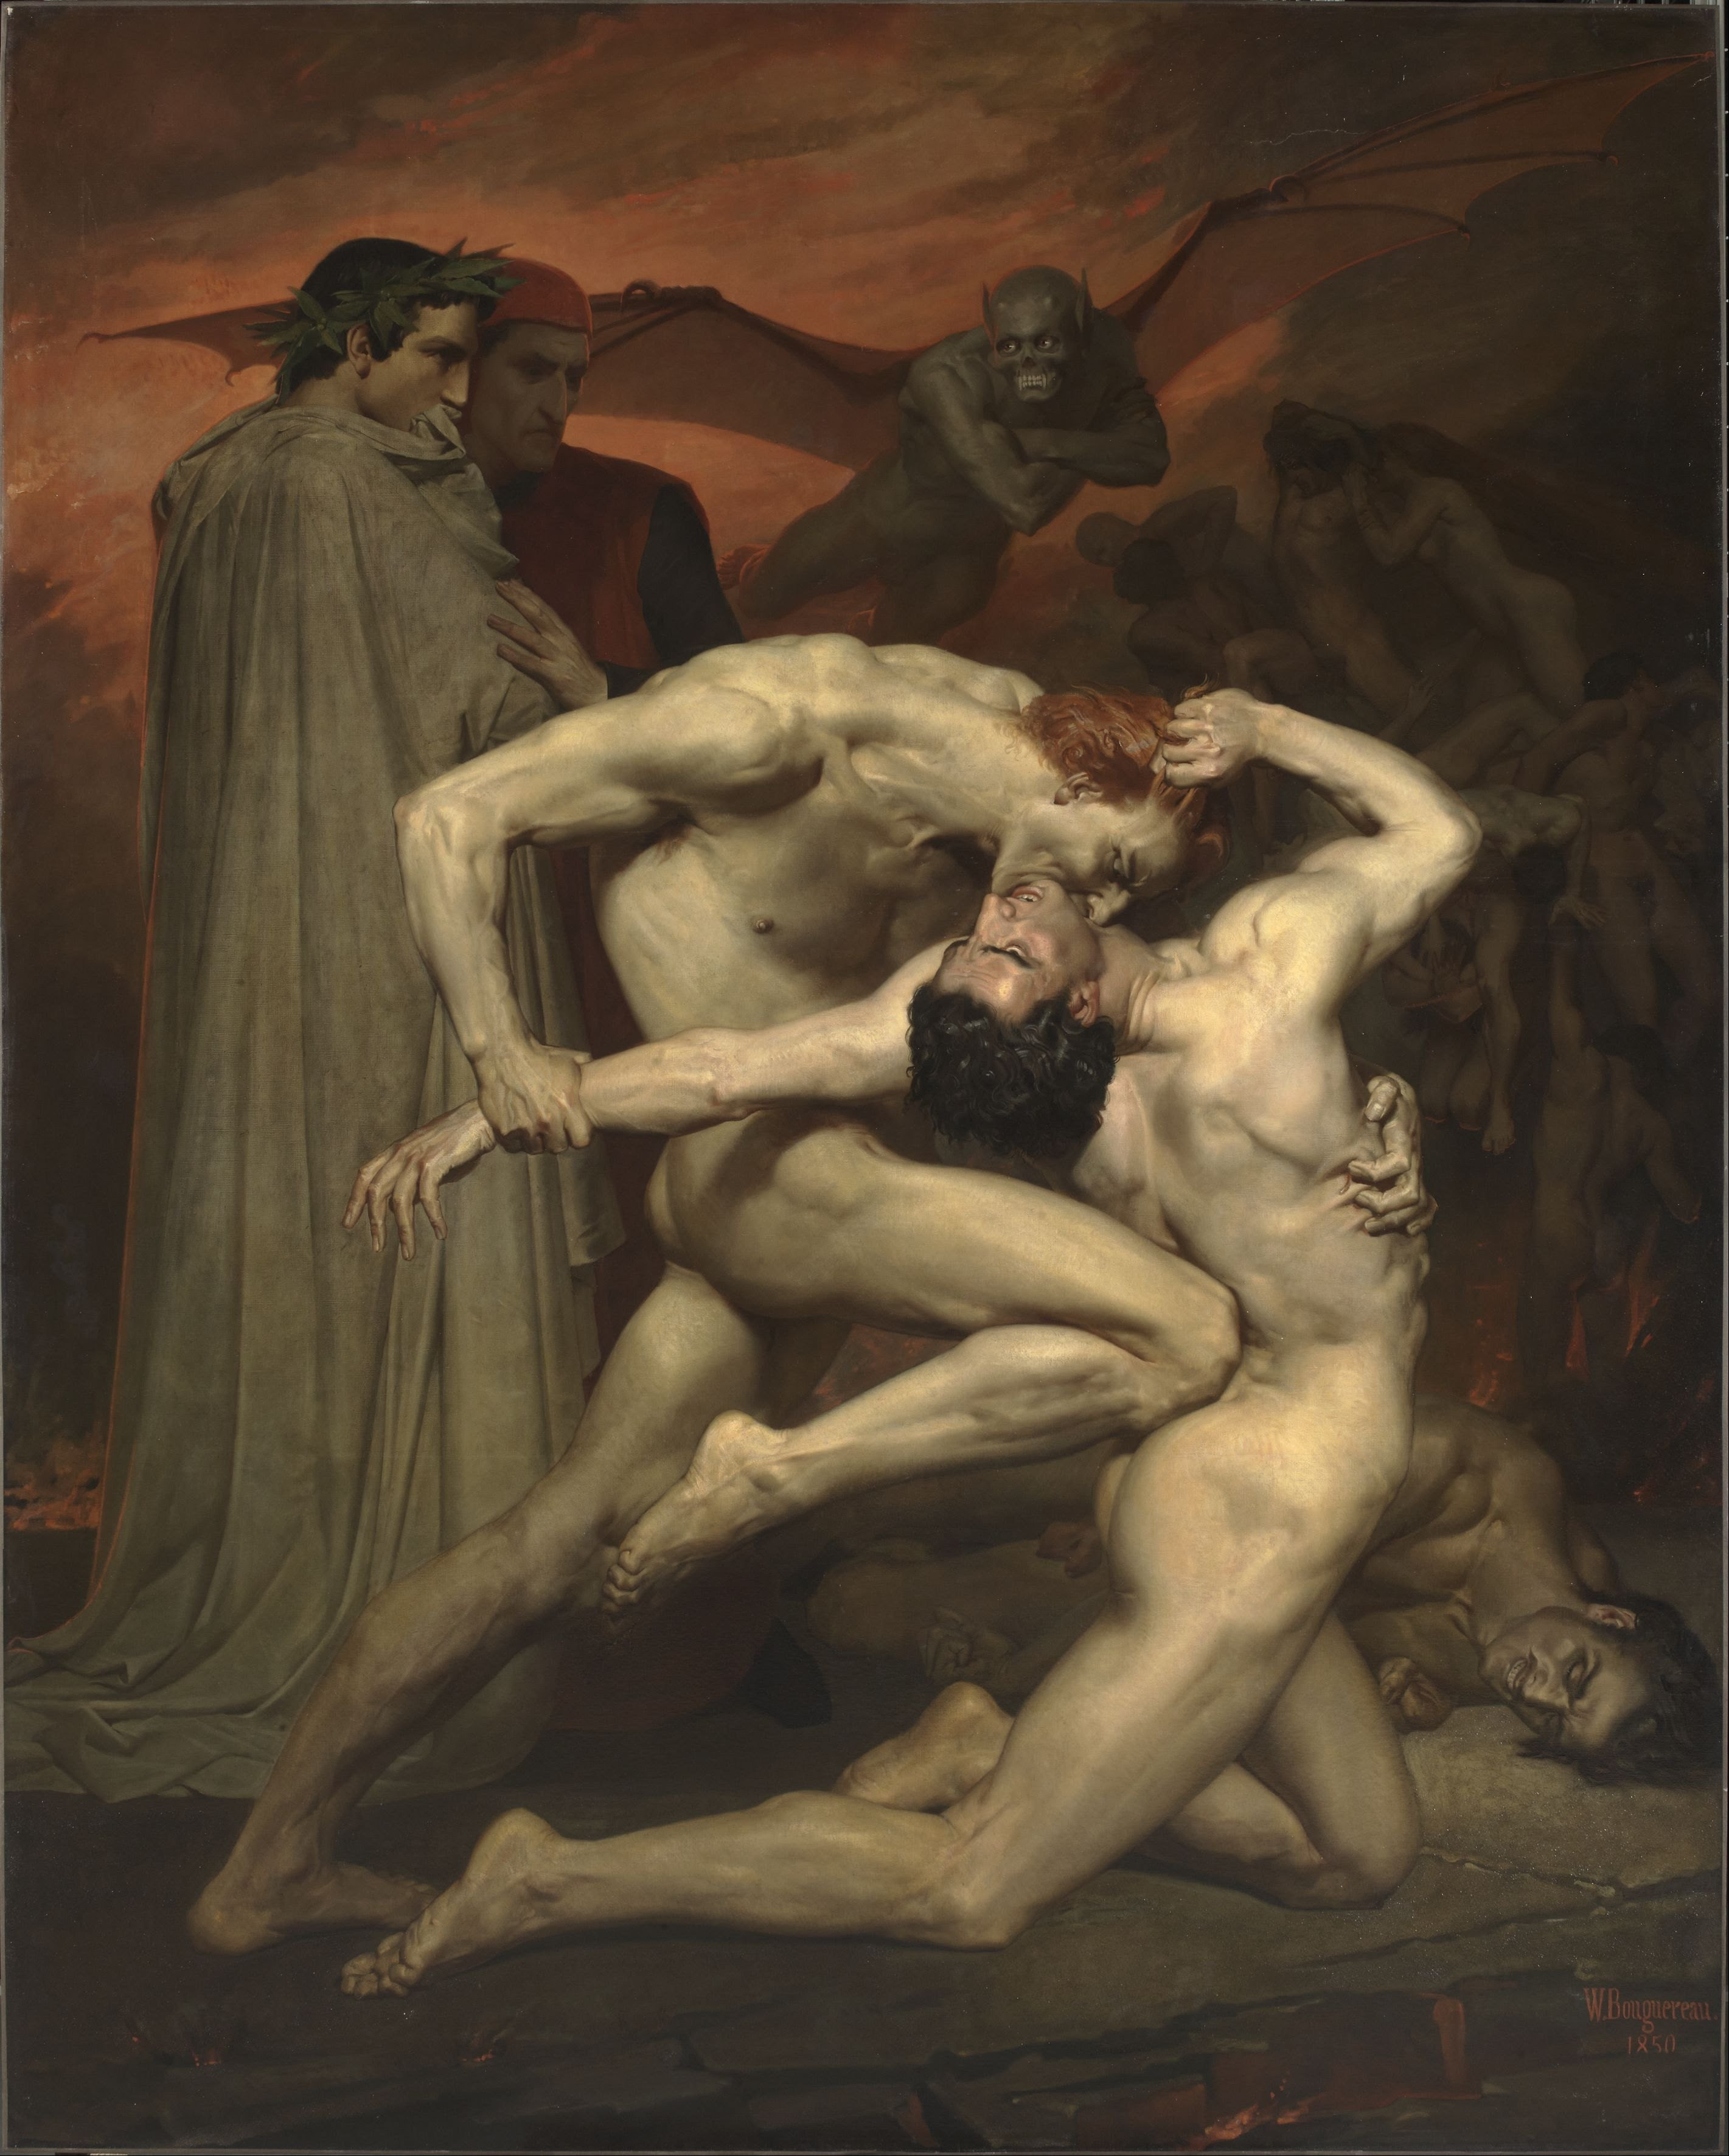 What Dante and virgil in hell consider